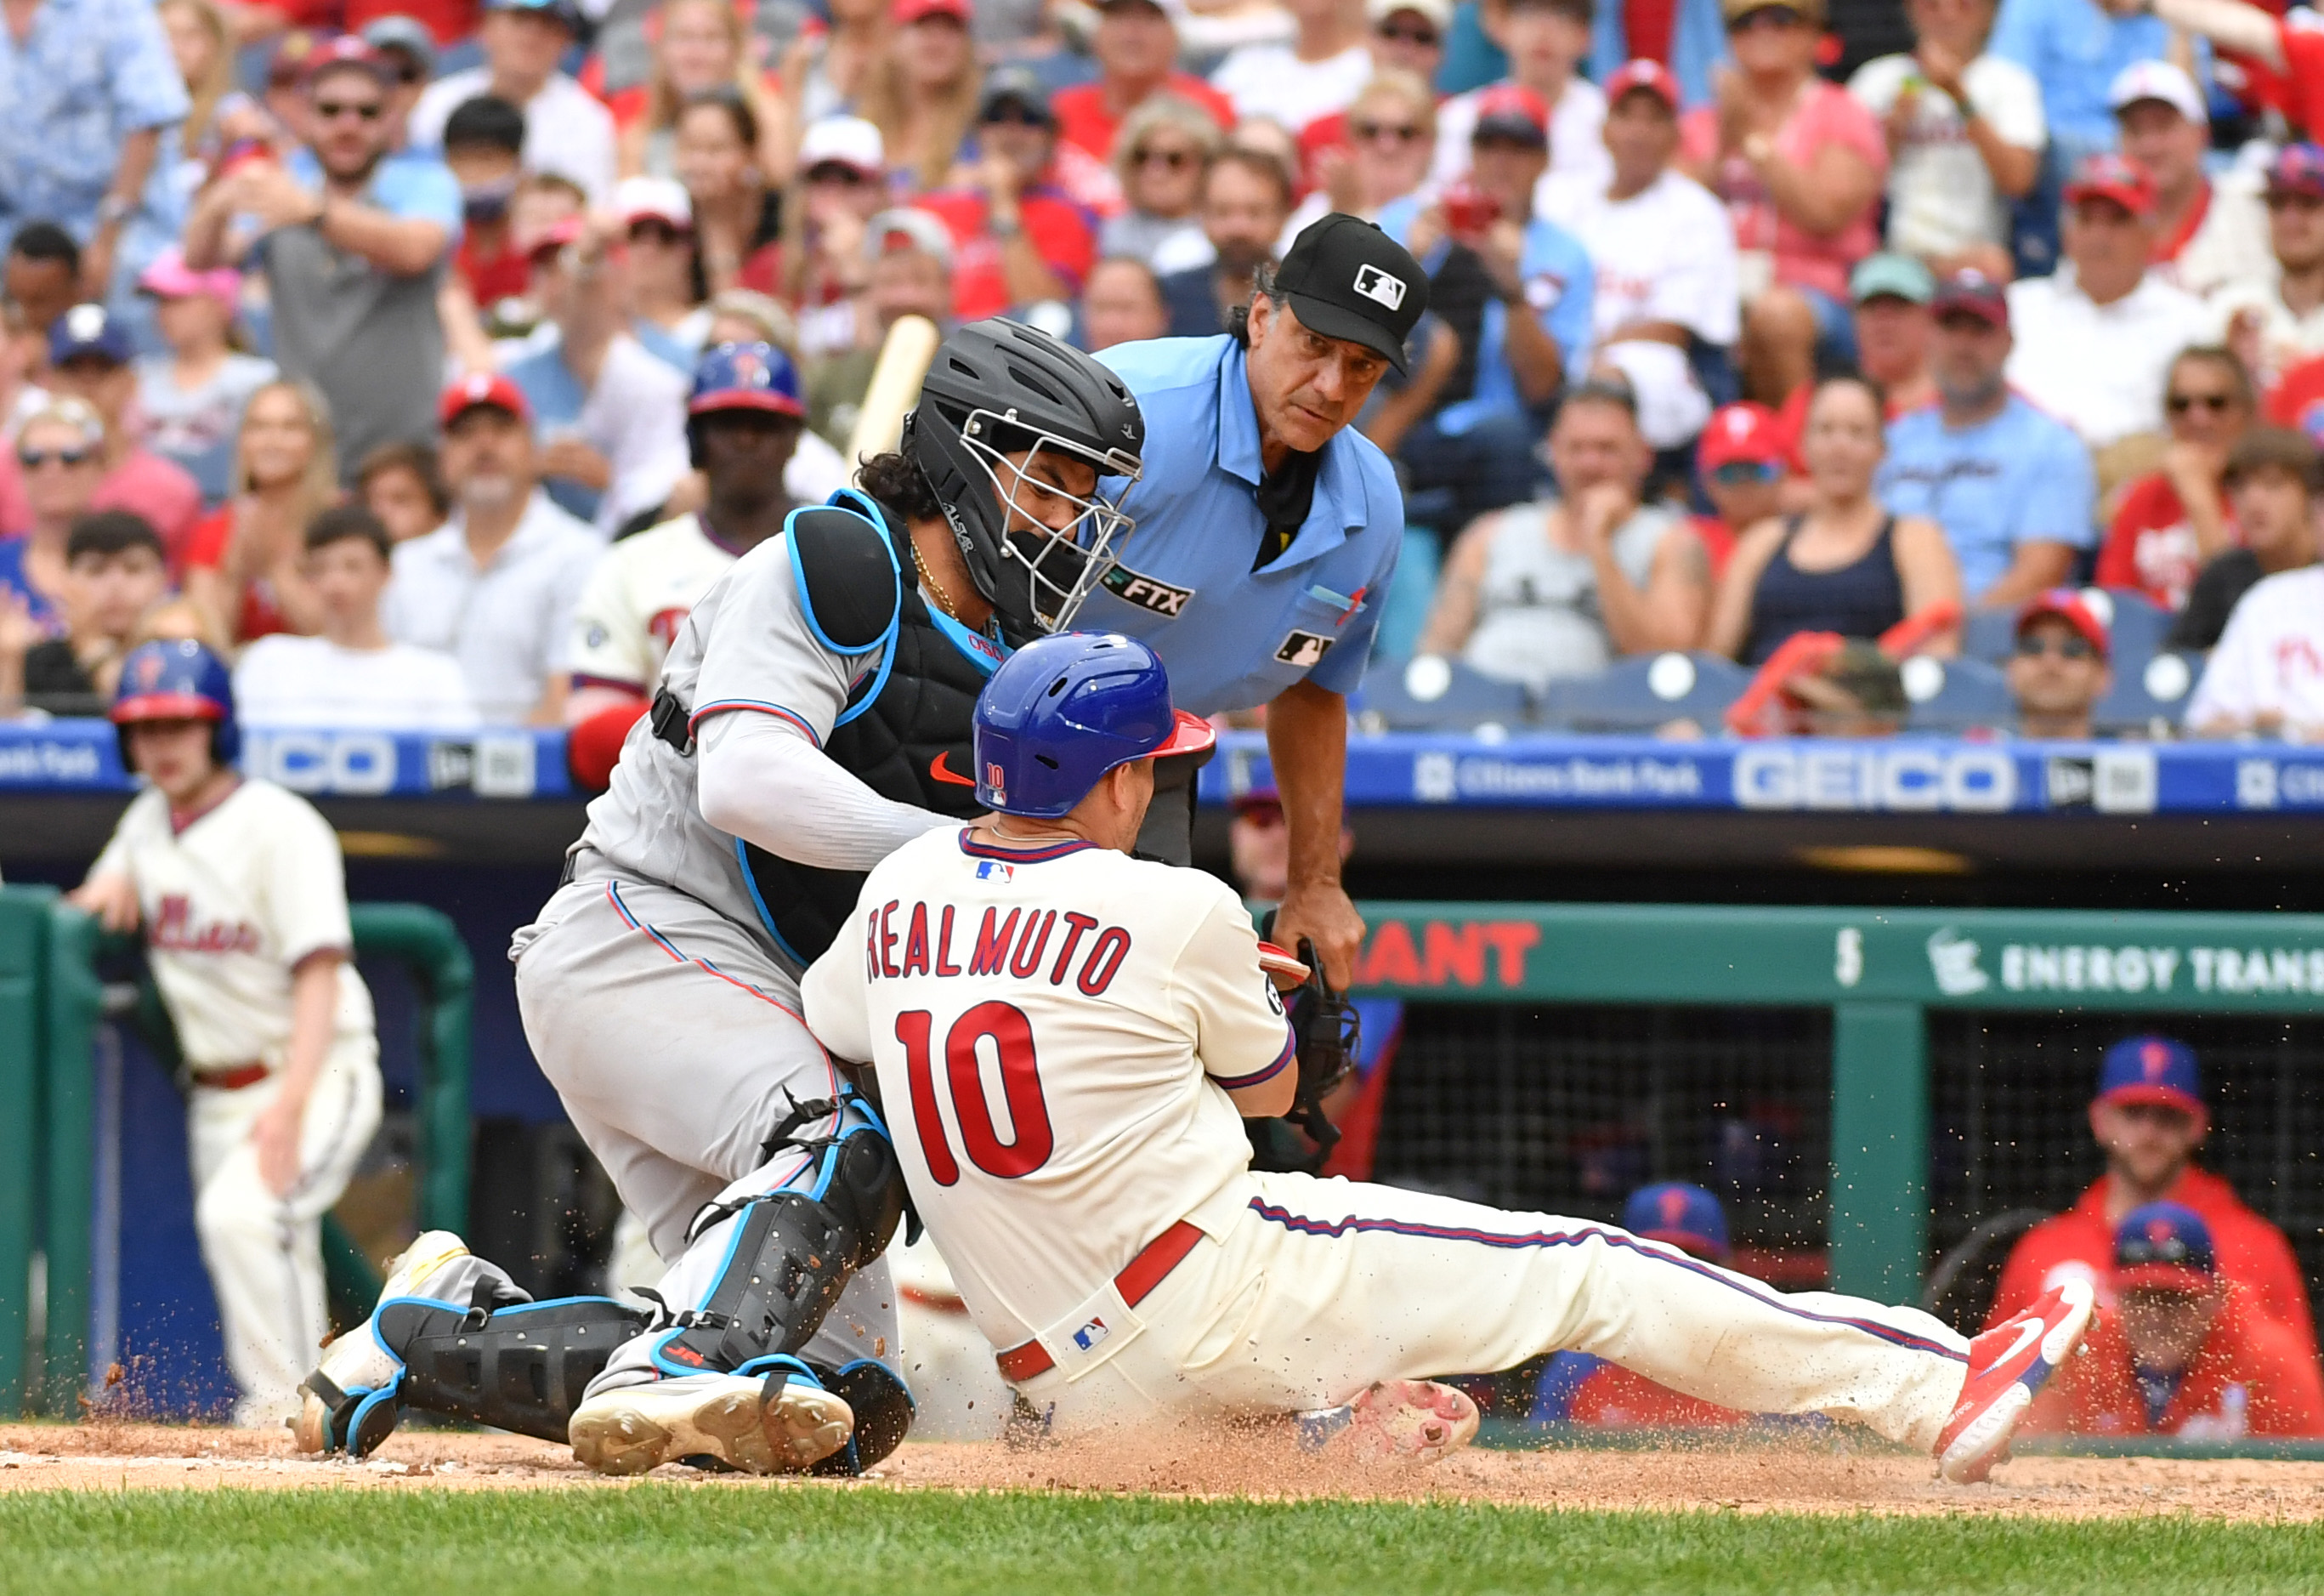 Miami Marlins catcher Jorge Alfaro (38) tags out Philadelphia Phillies catcher J.T. Realmuto (10) during the sixth inning at Citizens Bank Park.